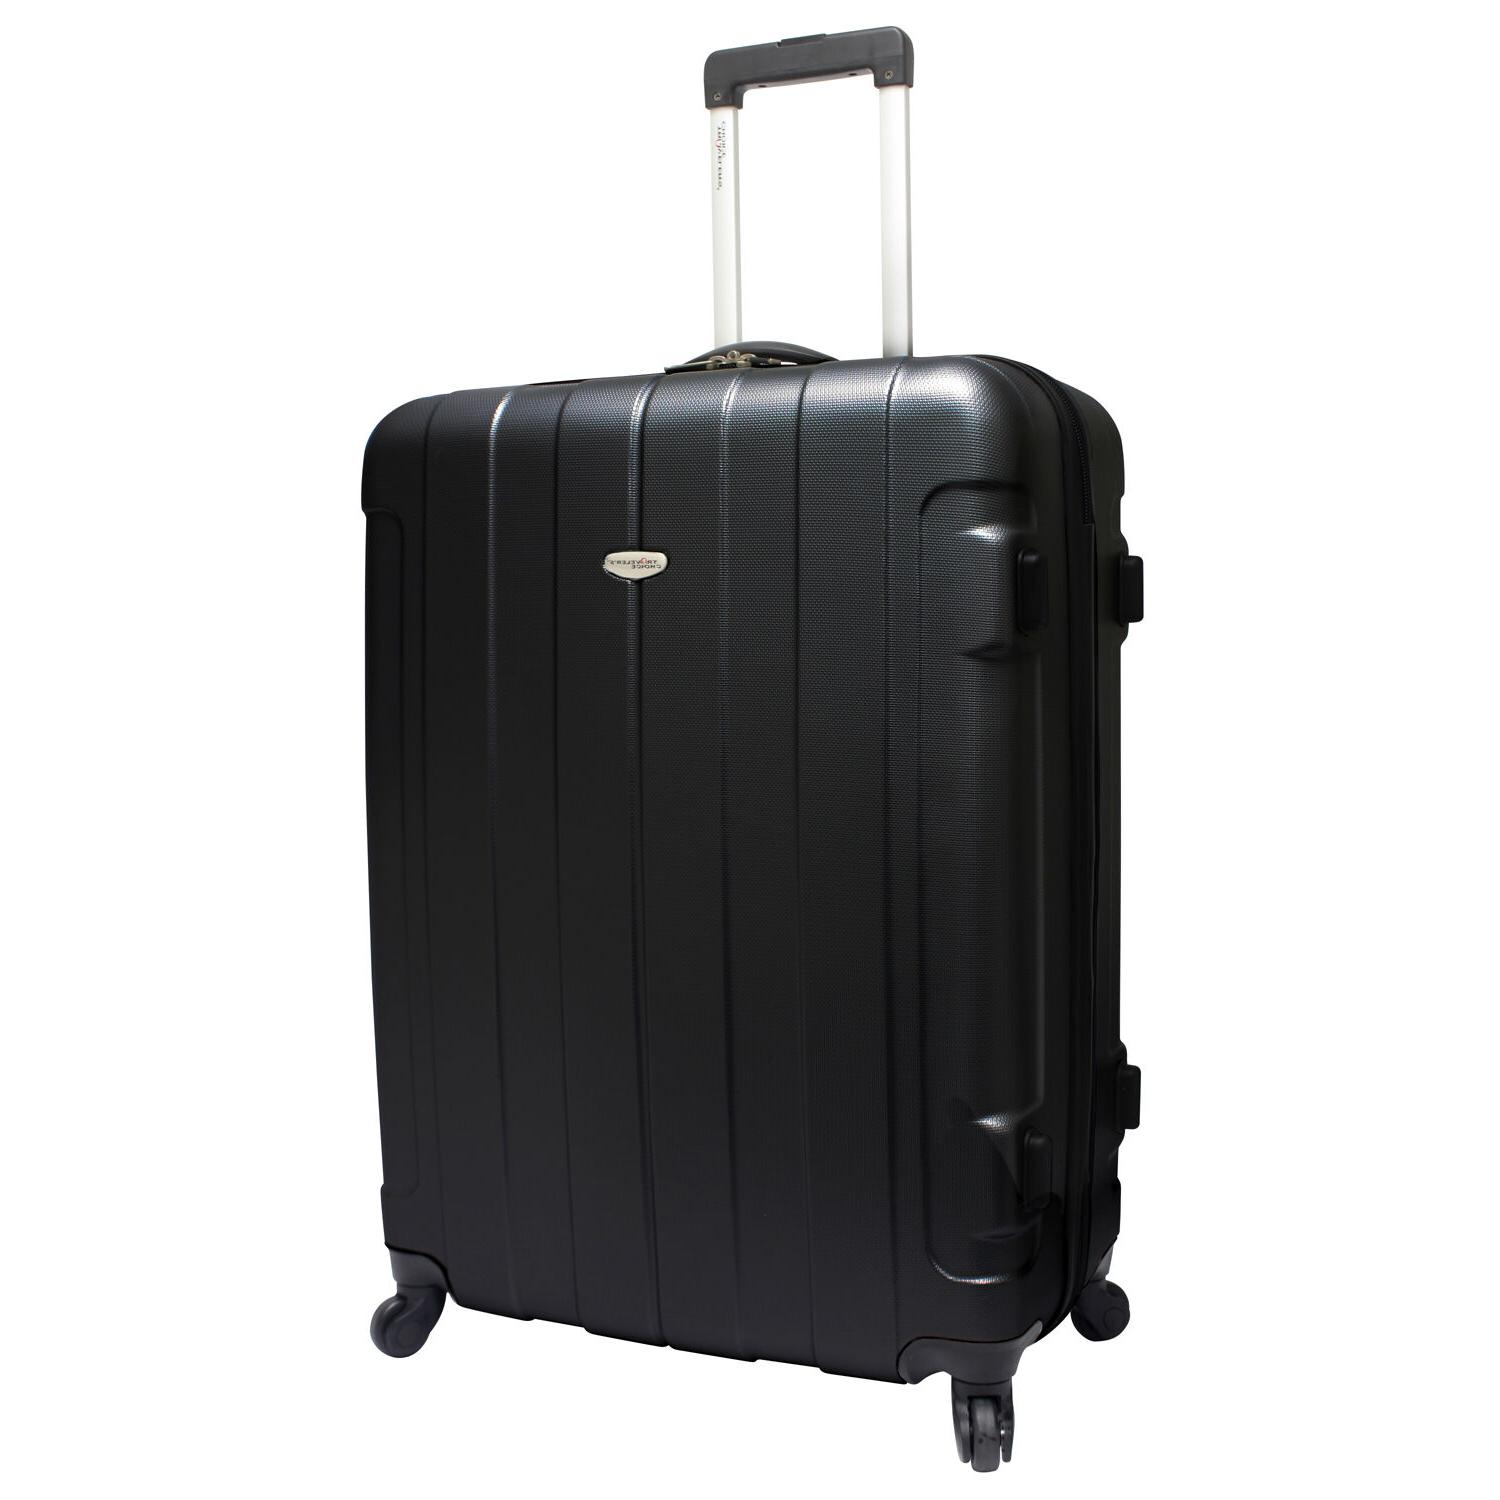 Traveler's Choice Rome 29 Hardshell Spinner Suitcase